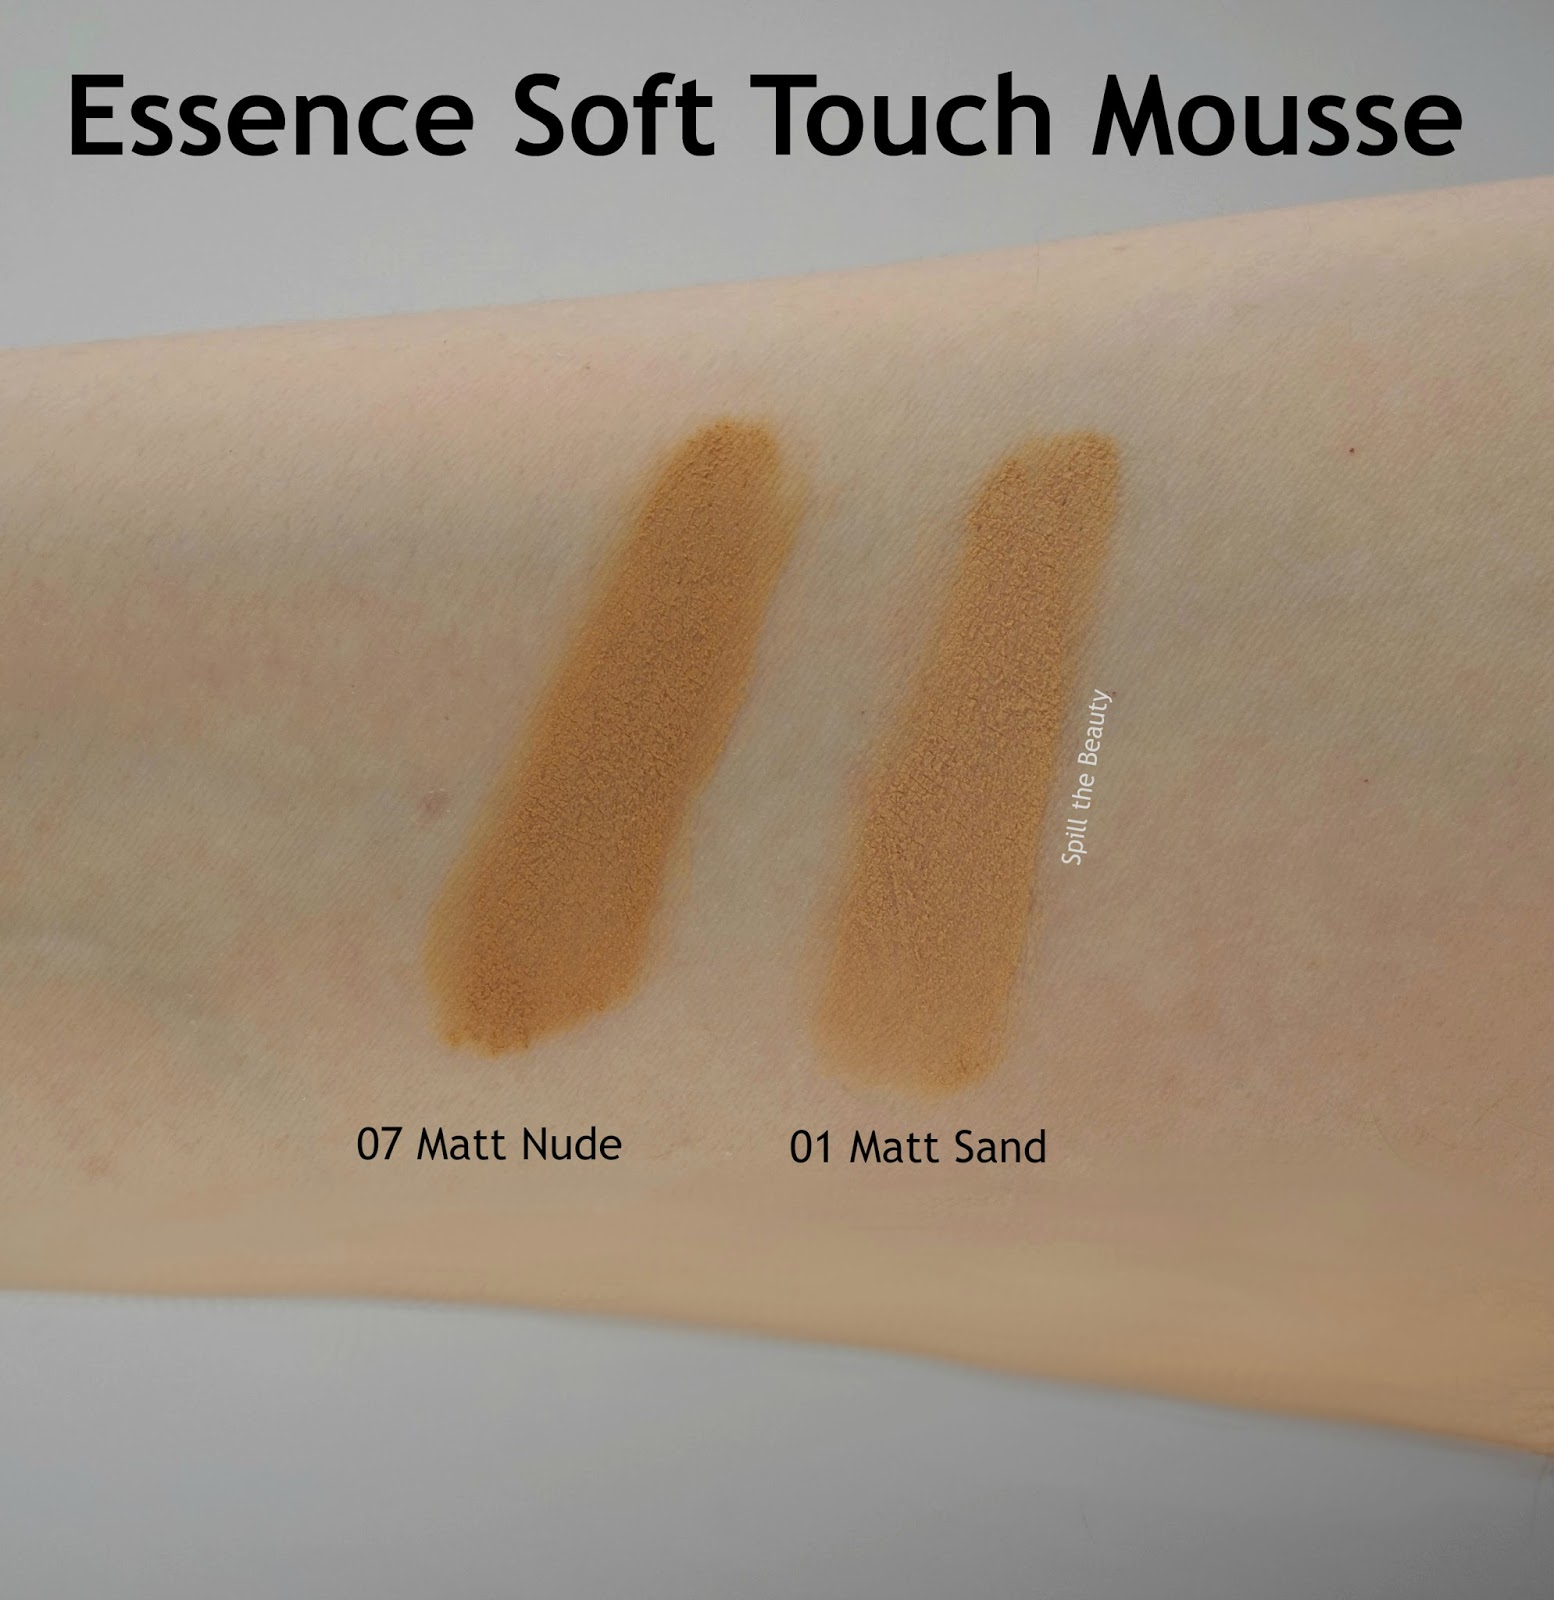 Essence Soft Touch Mousse 01 Matt Sand 07 Matt Nude Review Swatche, Before and After